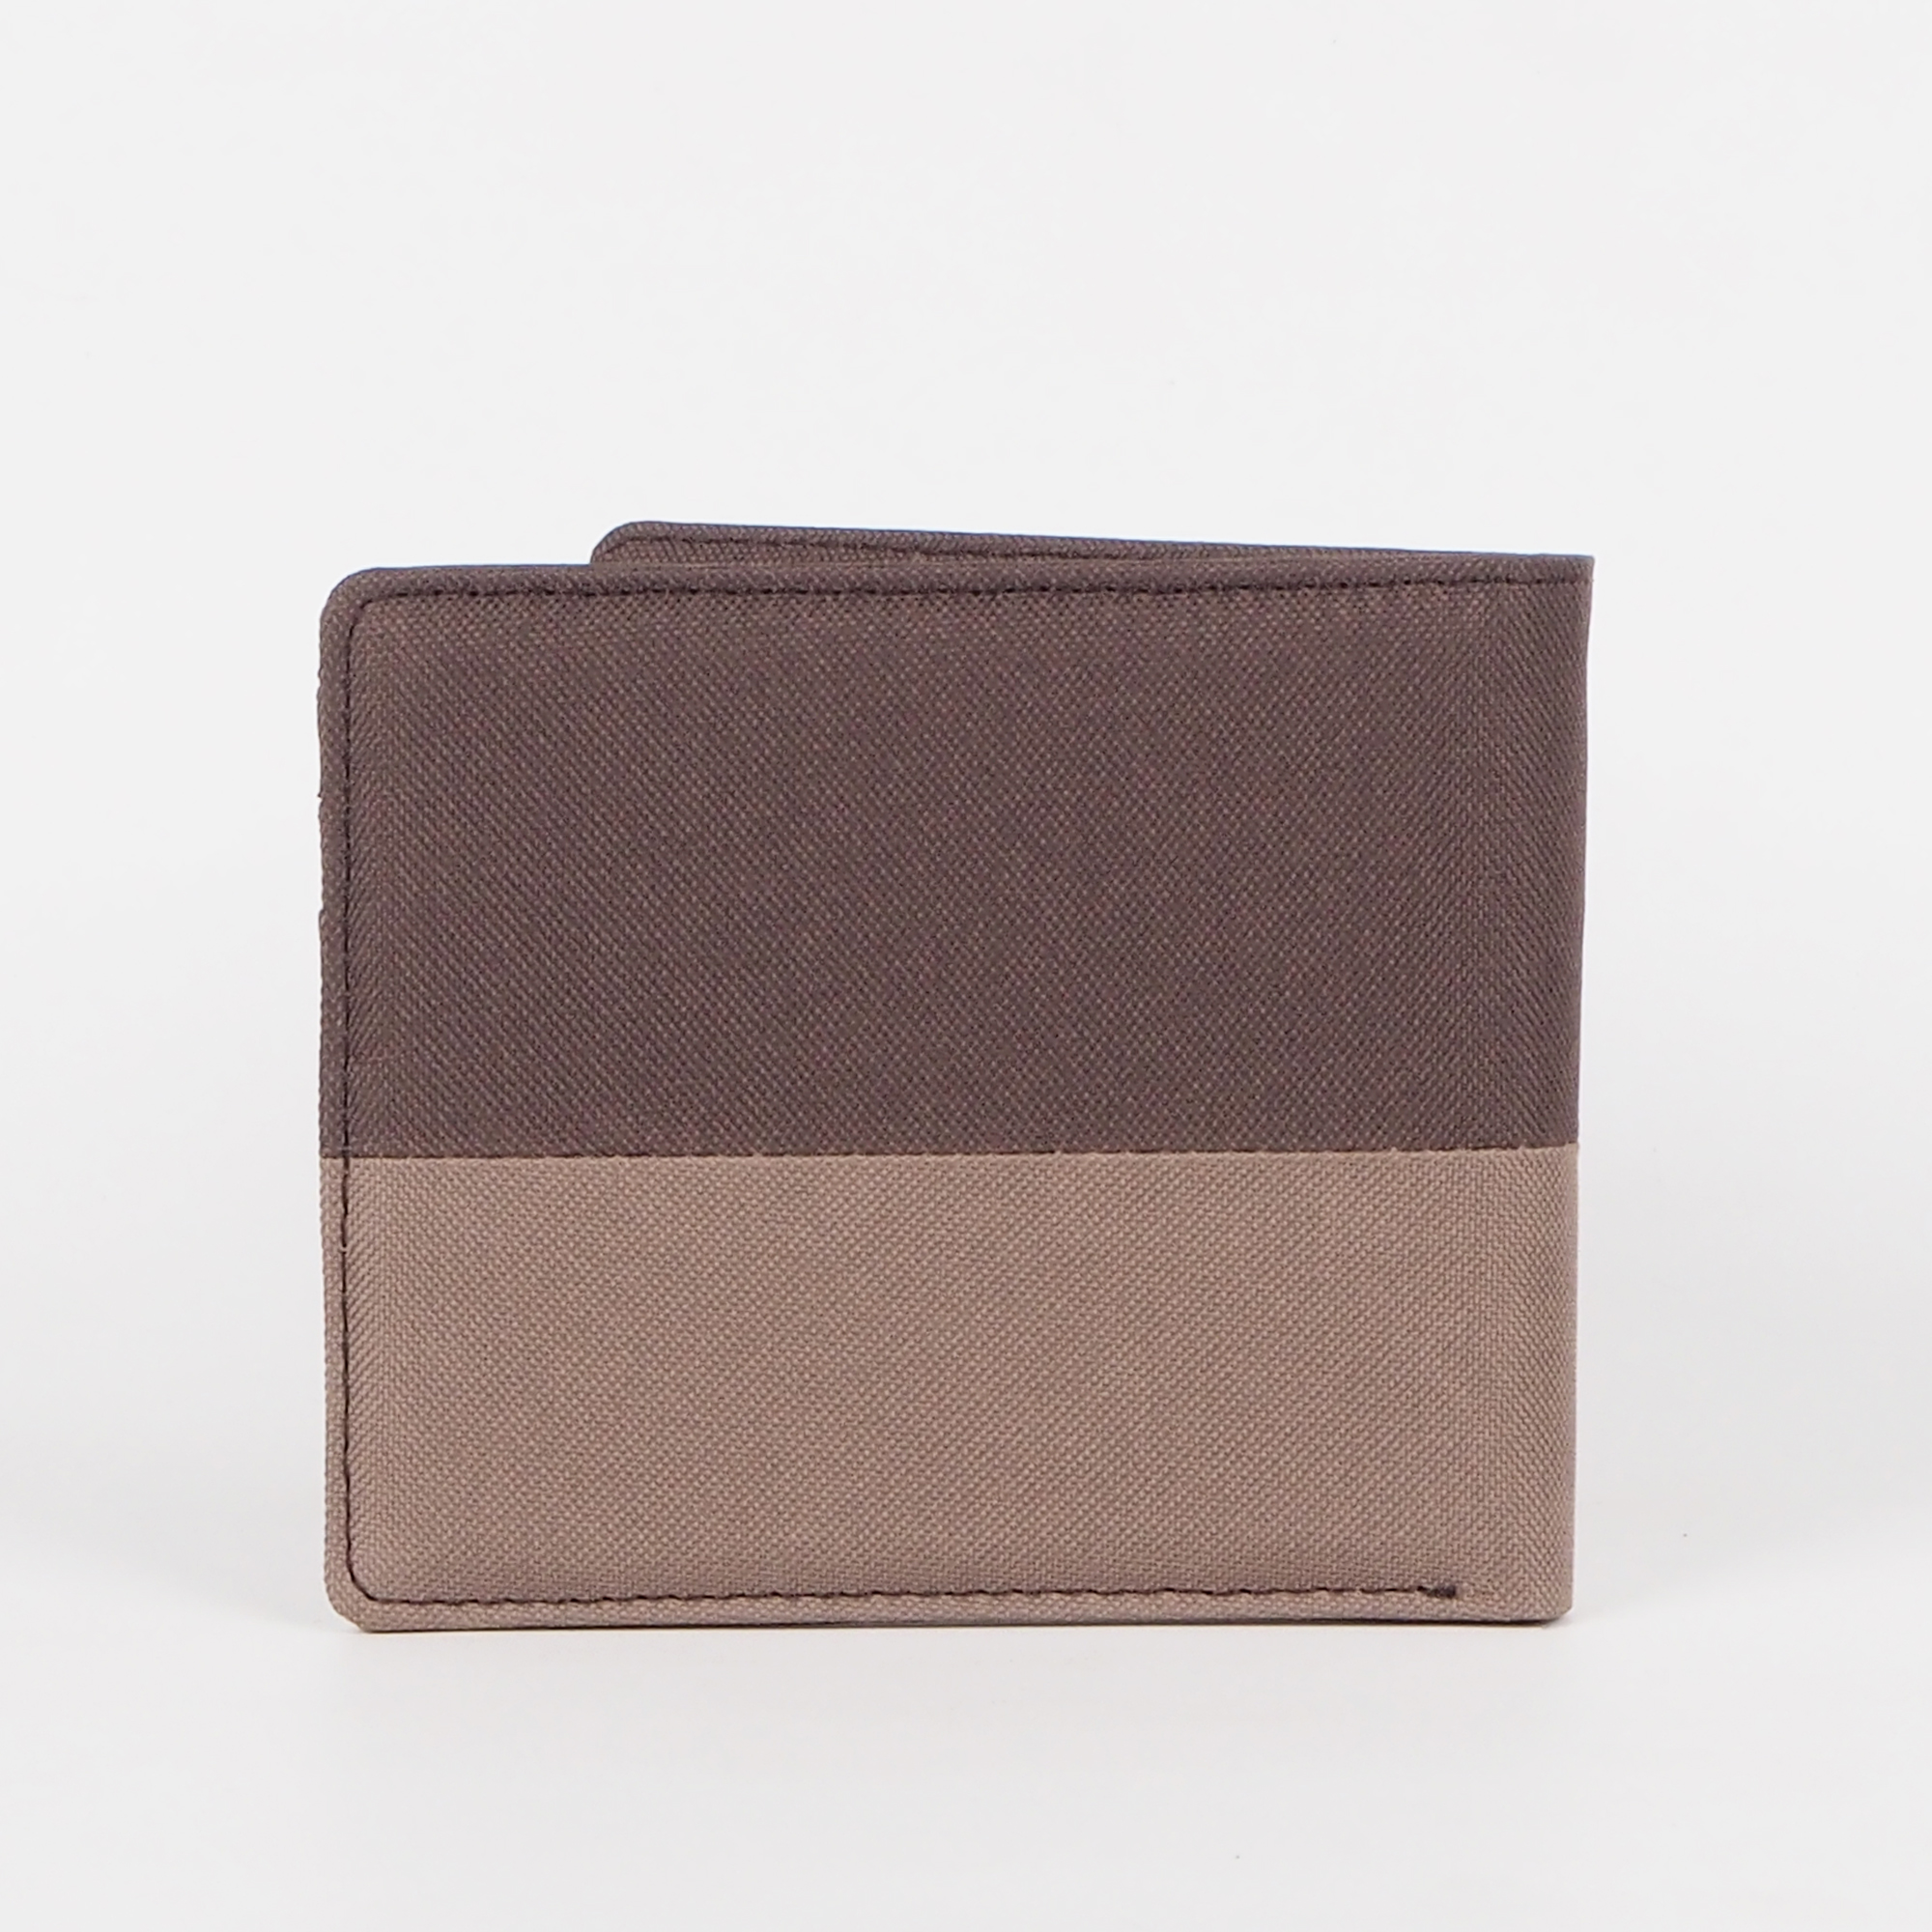 BAGNEZIA Dompet Wallet Lipat Wallts Neath Brown